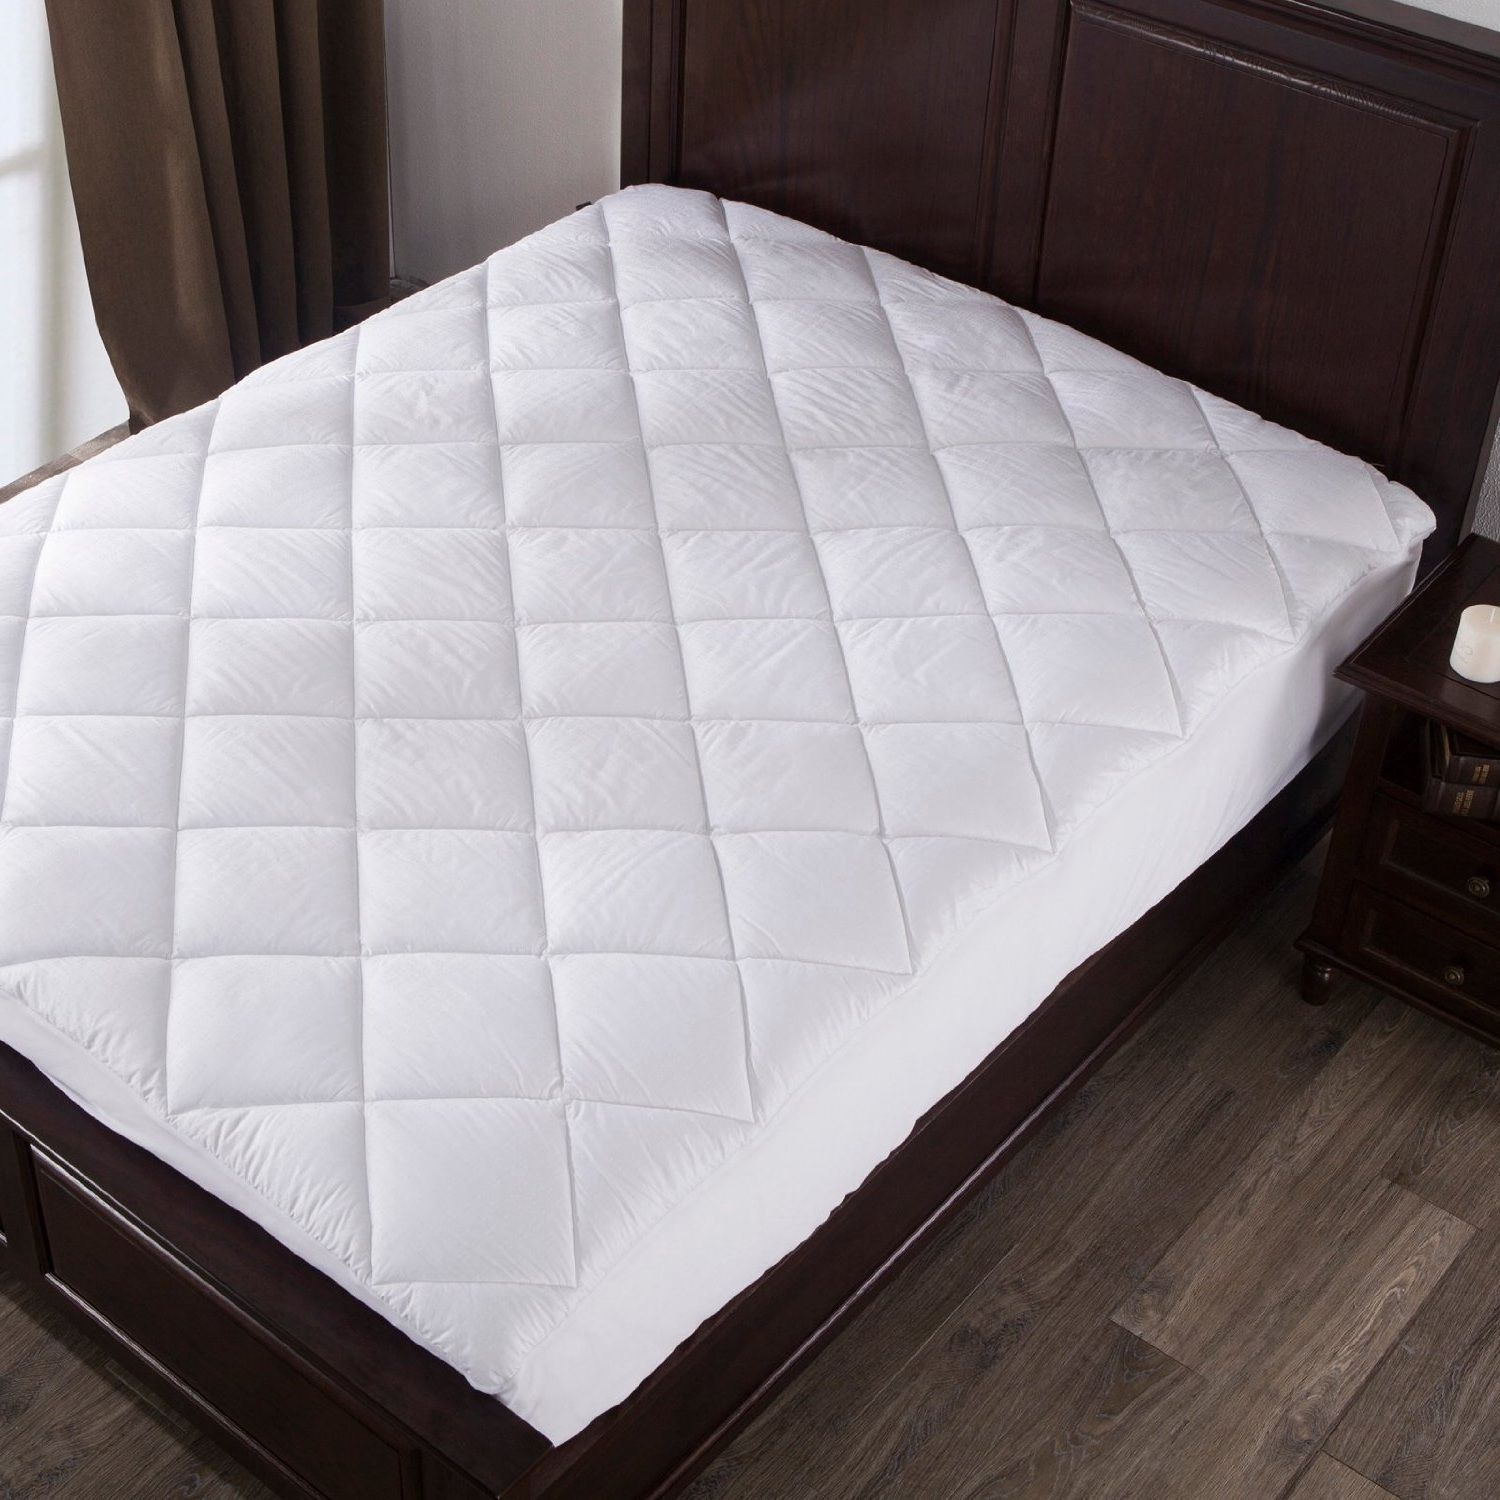 Mattress pad twin size 100 cotton topper pillow top bed cover comforter bedroom mattress pads Best twin size mattress